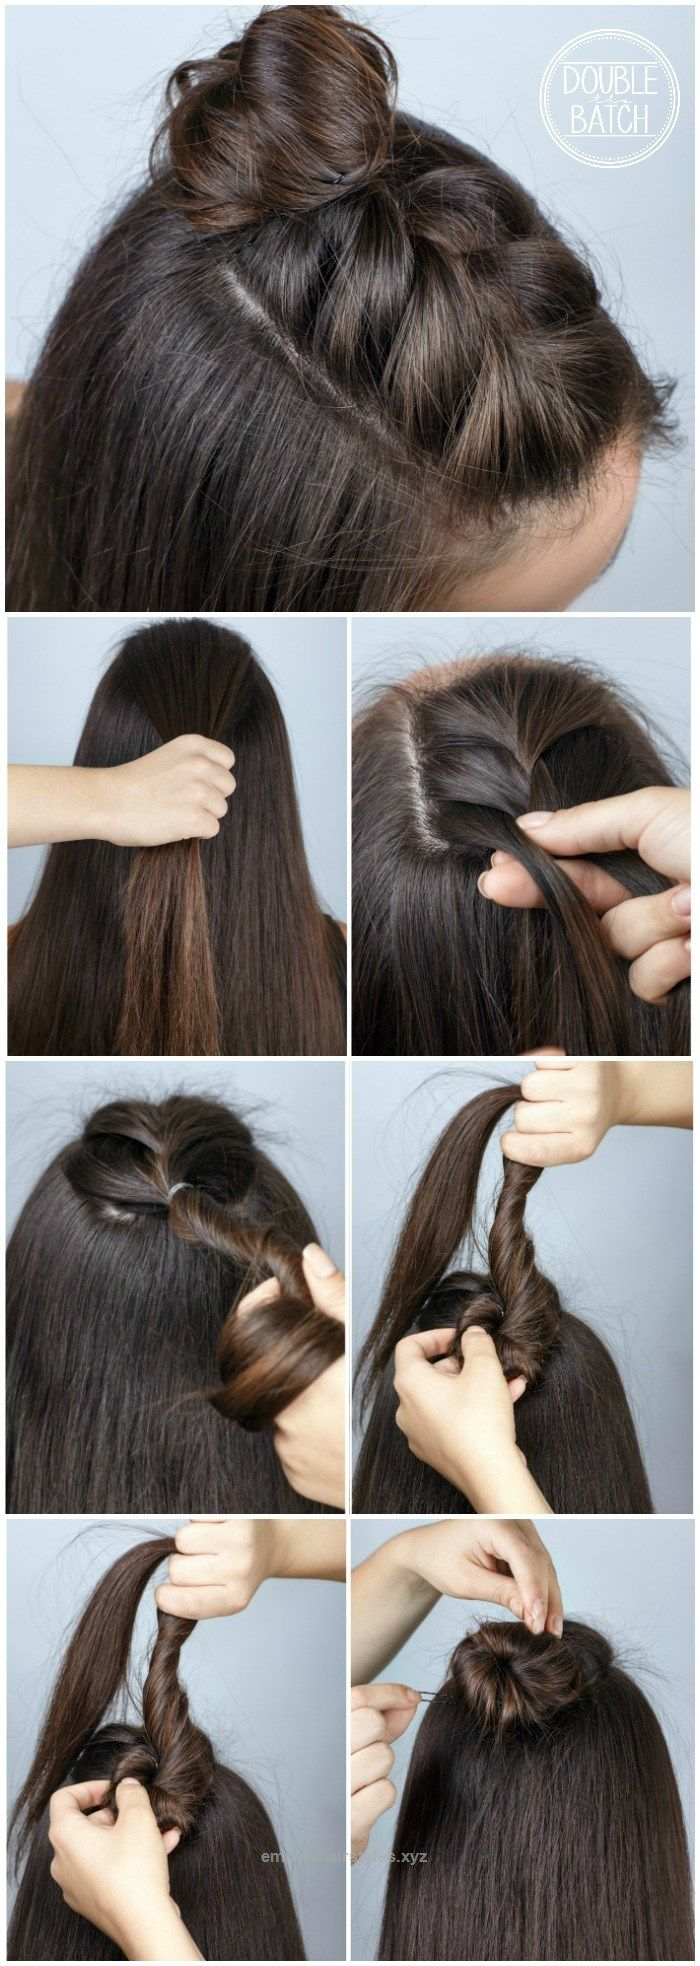 Diy Half Braid Hairstyle Tutorial Such An Easy And Quick Hair Idea For Girls Pinterest Hair Hair Styles Long Hair Styles